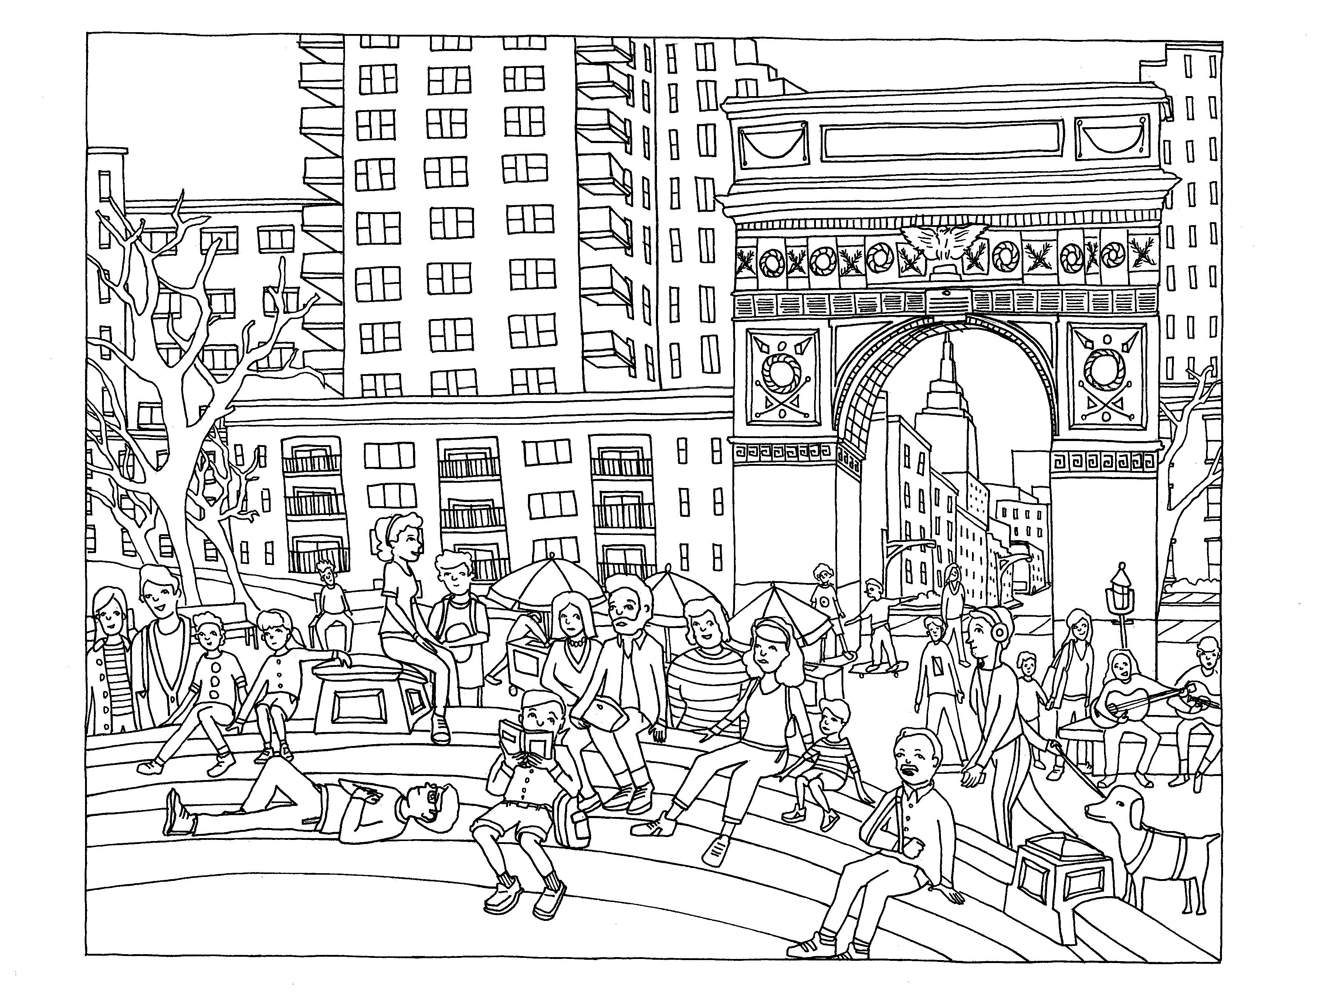 New York - Coloring Pages for Adults